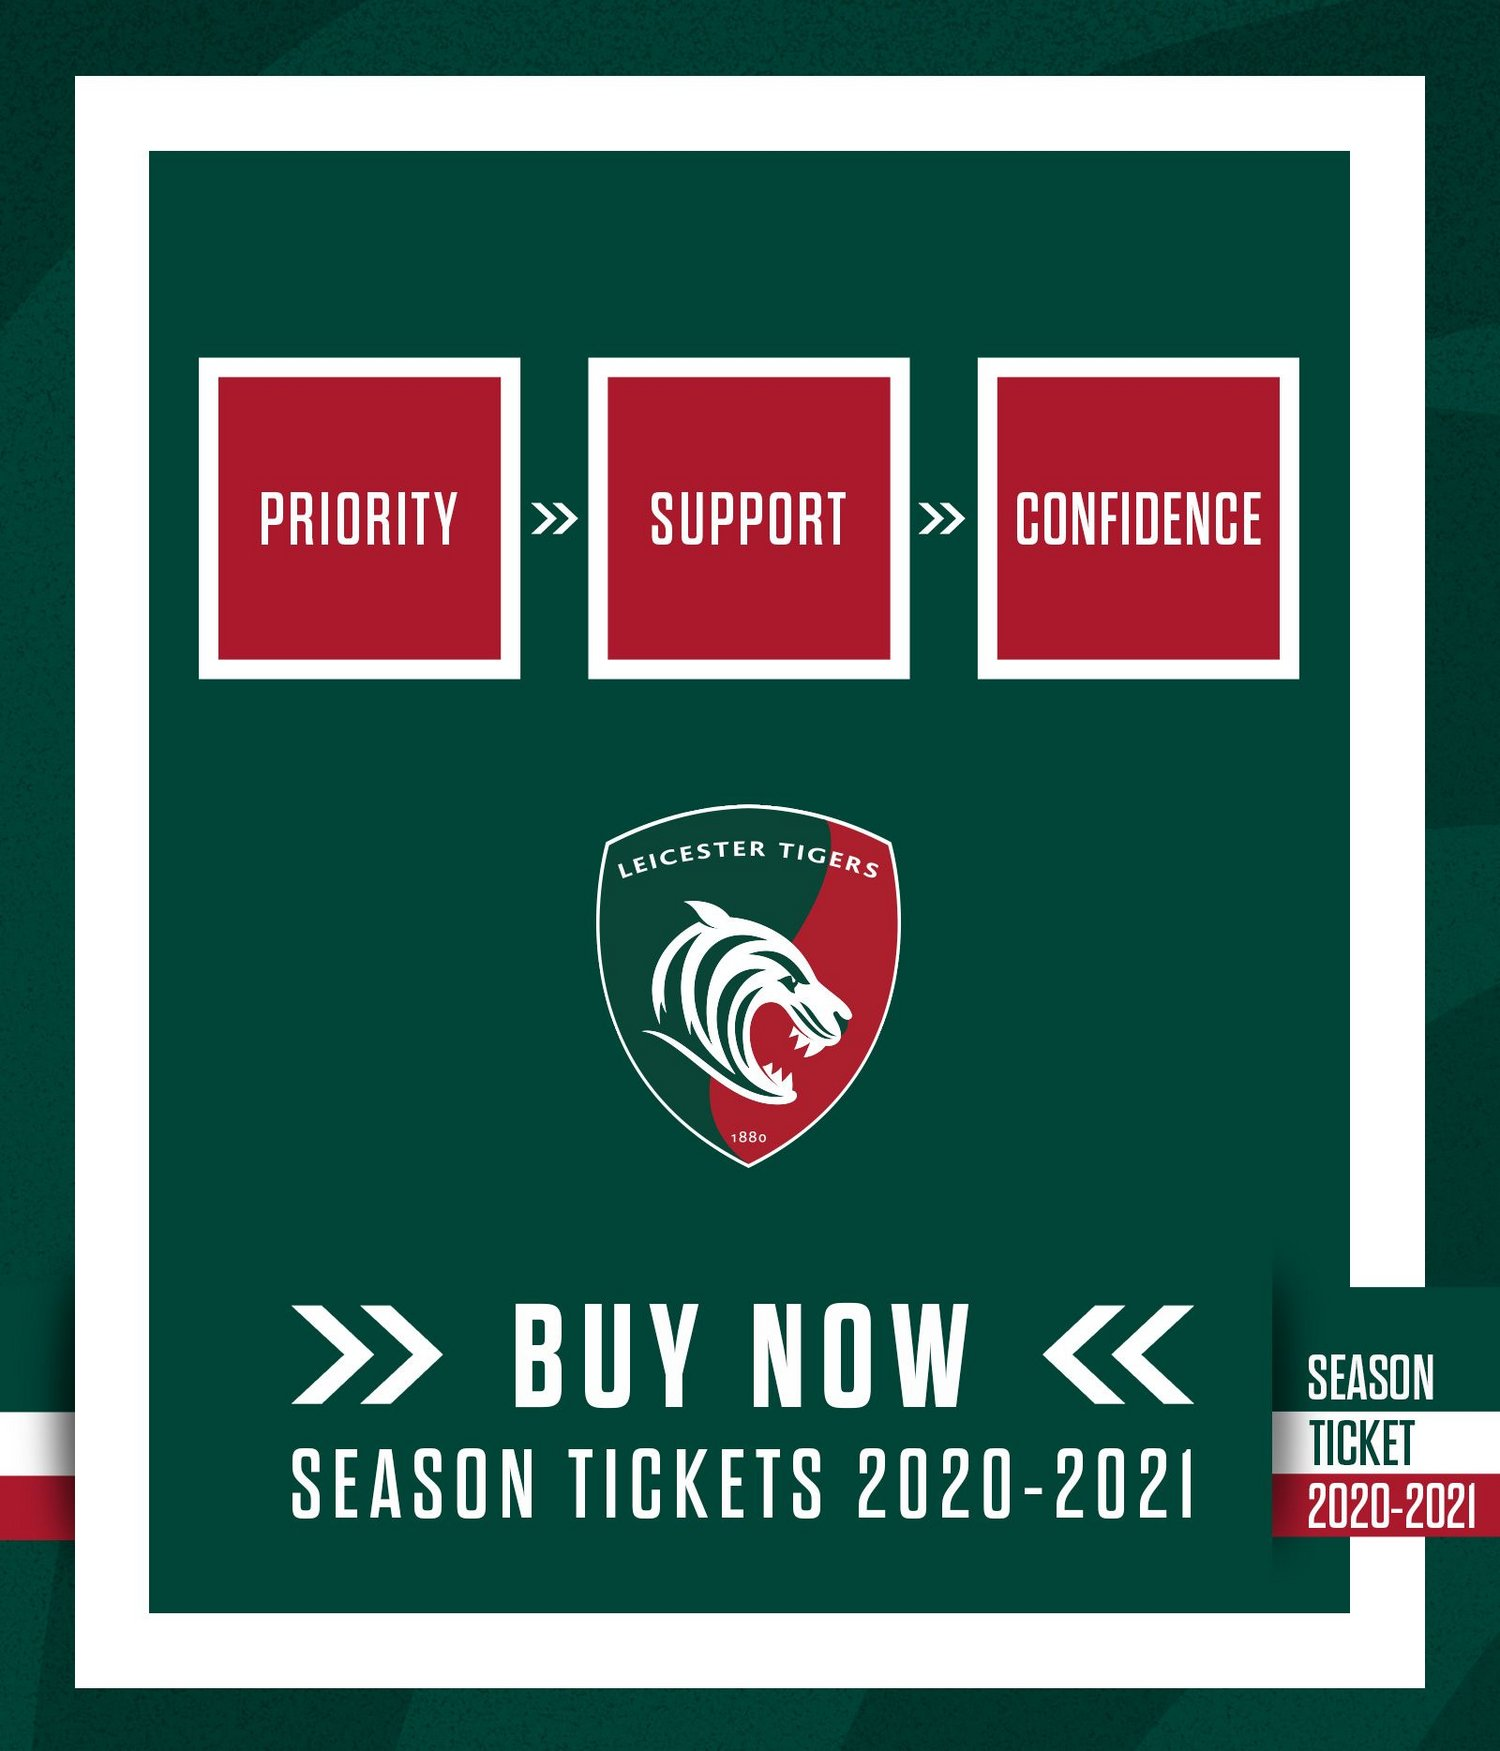 Season tickets 202021